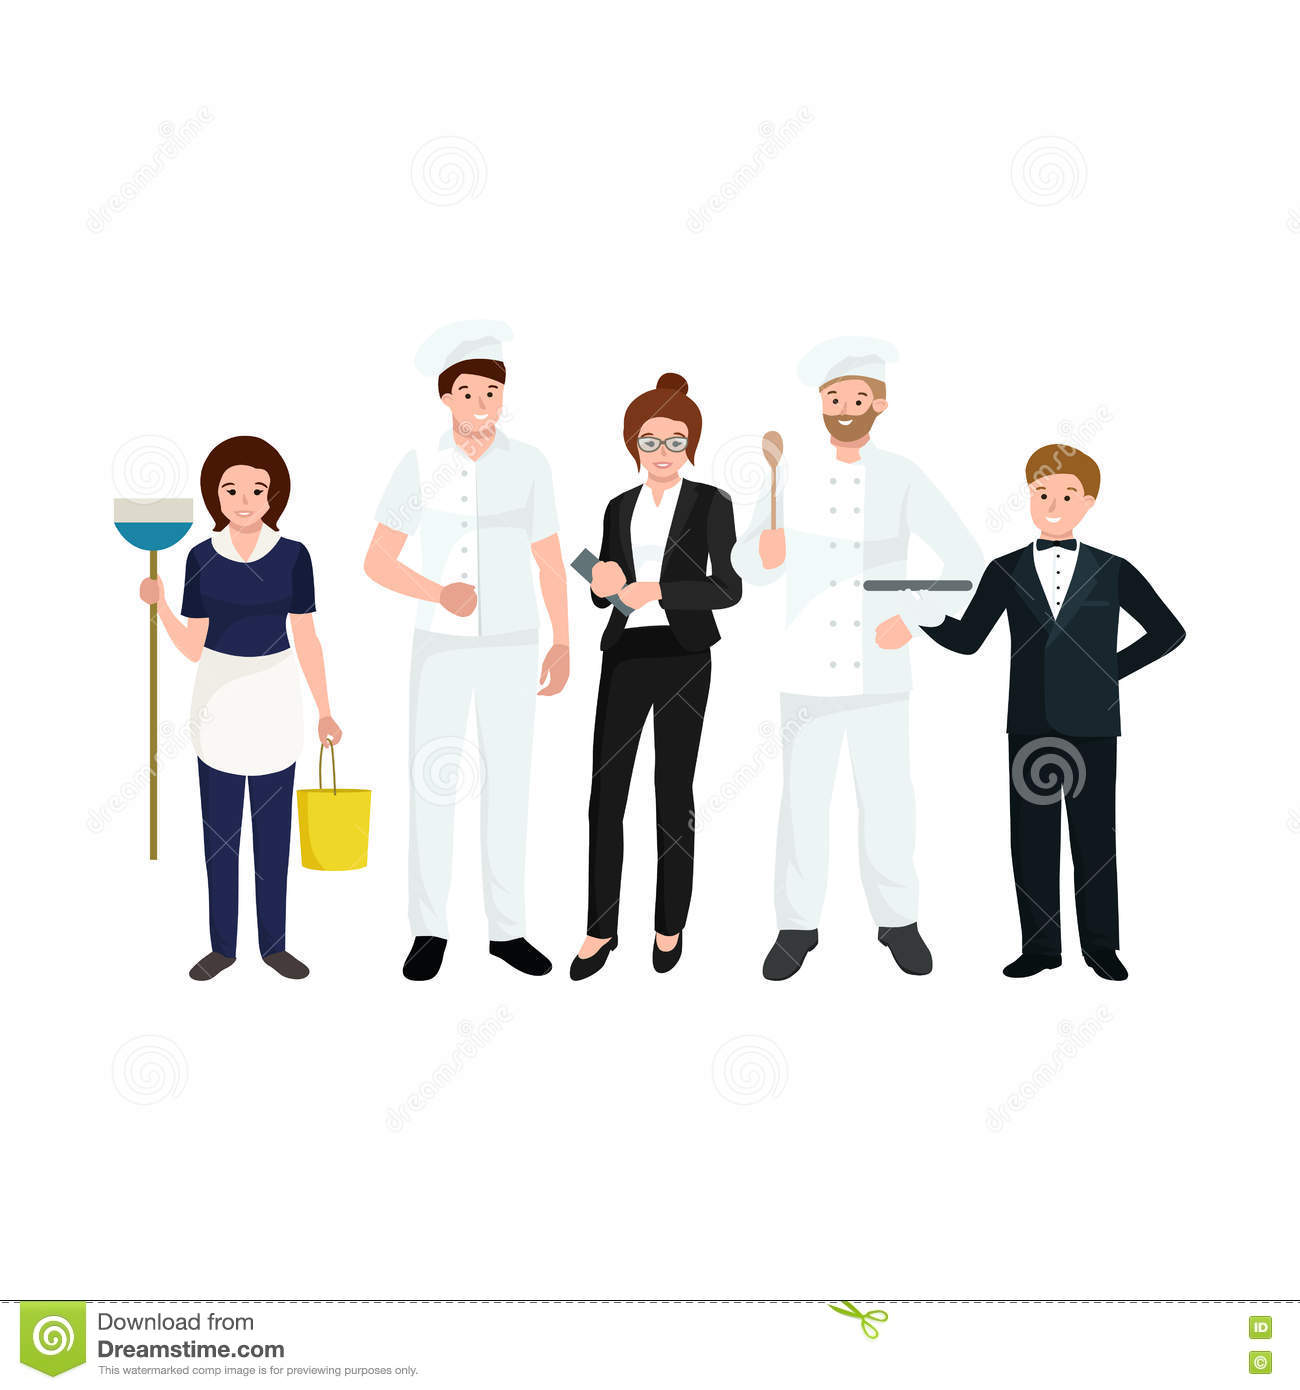 Restaurant manager clipart graphic freeuse download Restaurant manager clipart 5 » Clipart Station graphic freeuse download